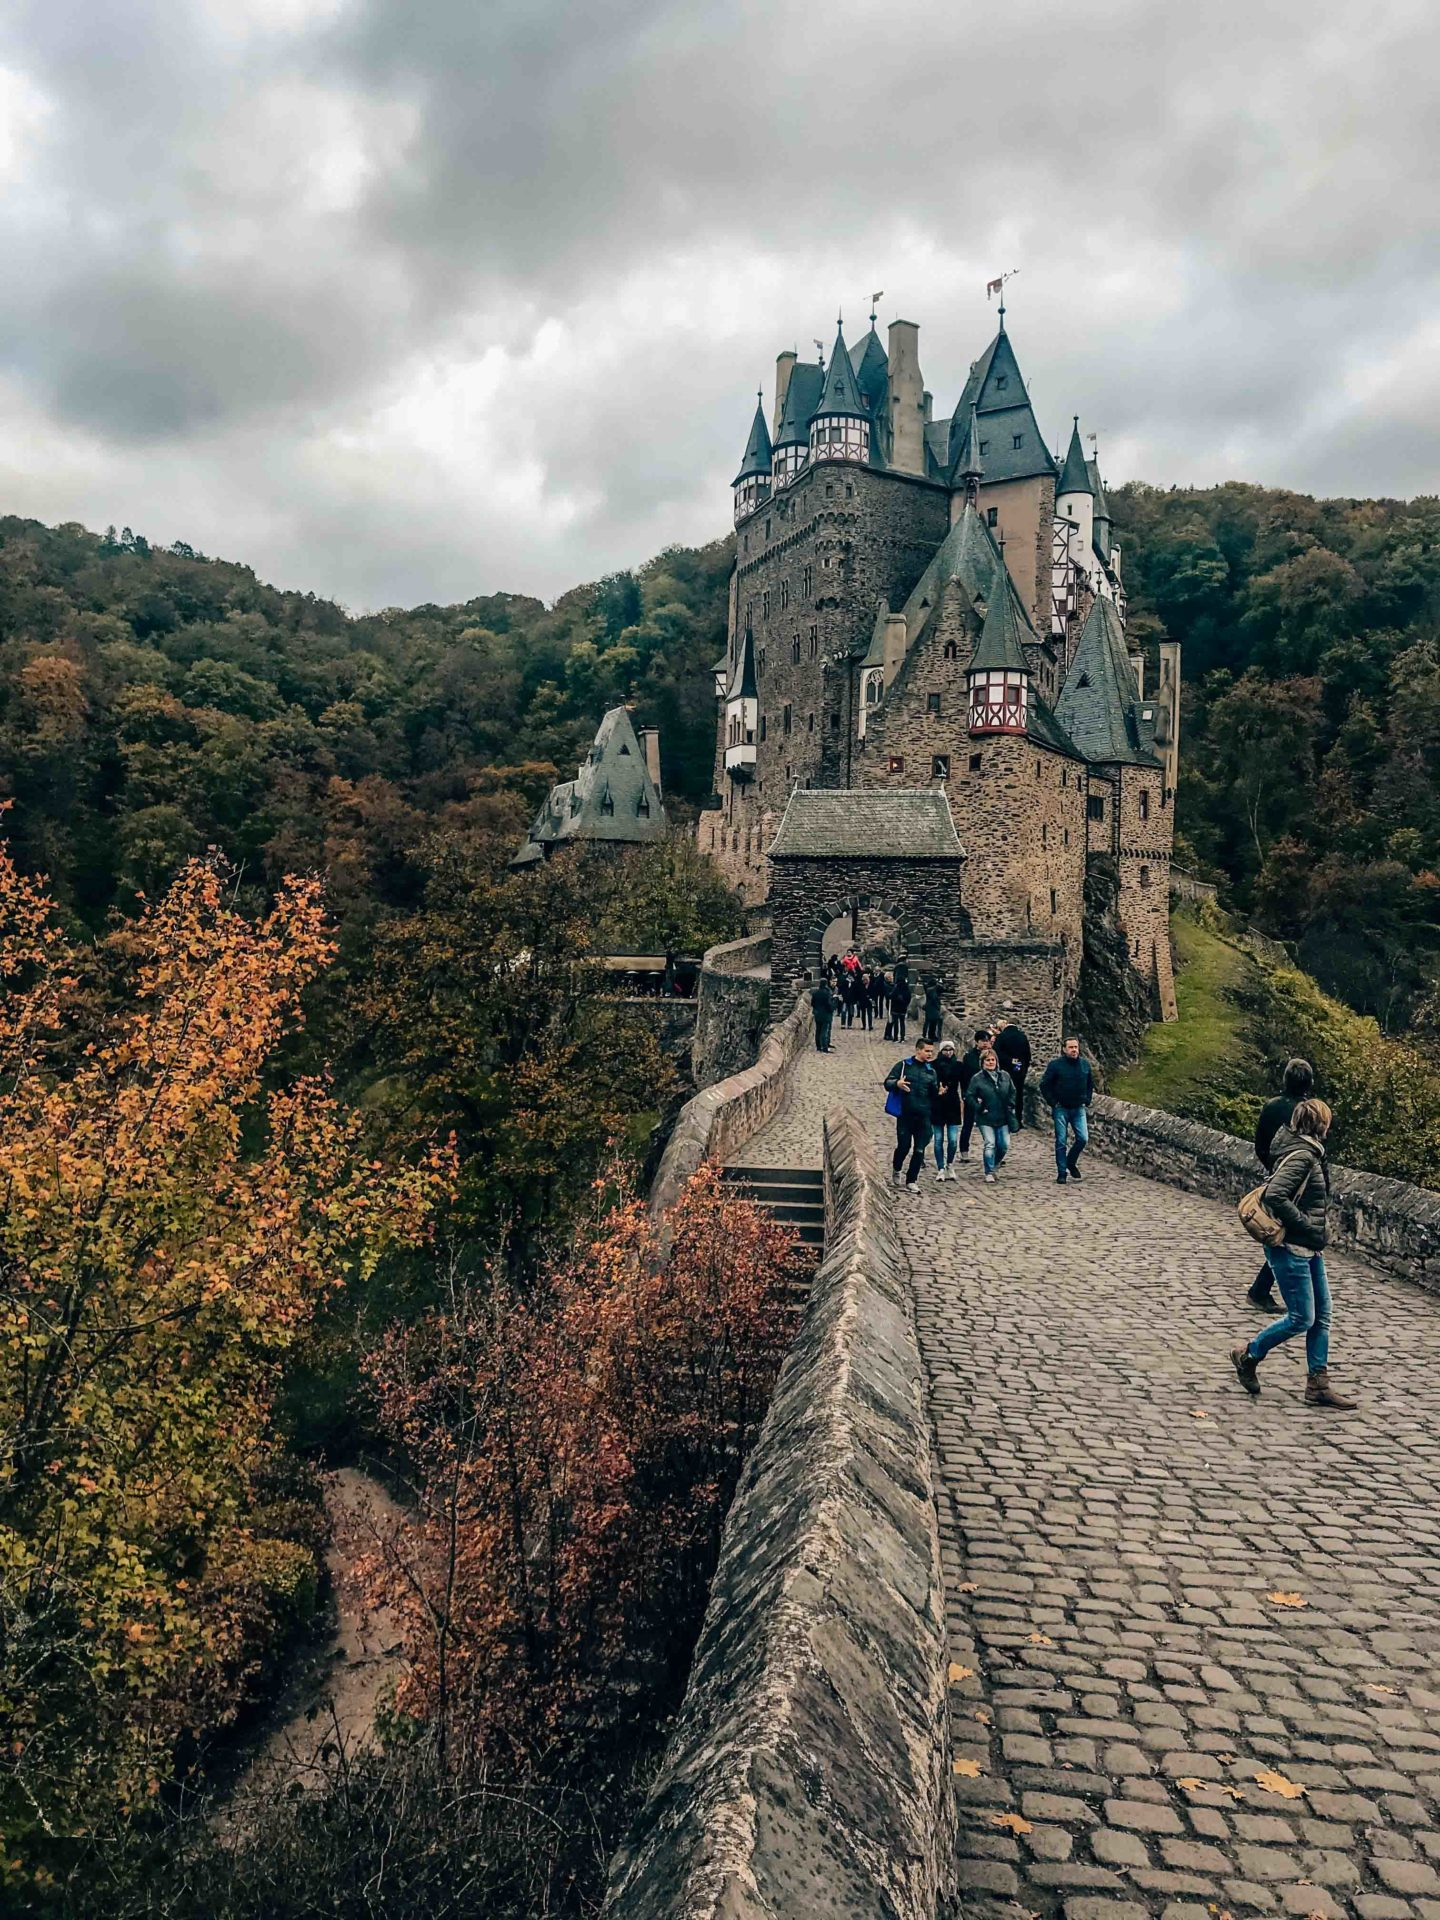 Must-see place in Autumn, Burg Eltz